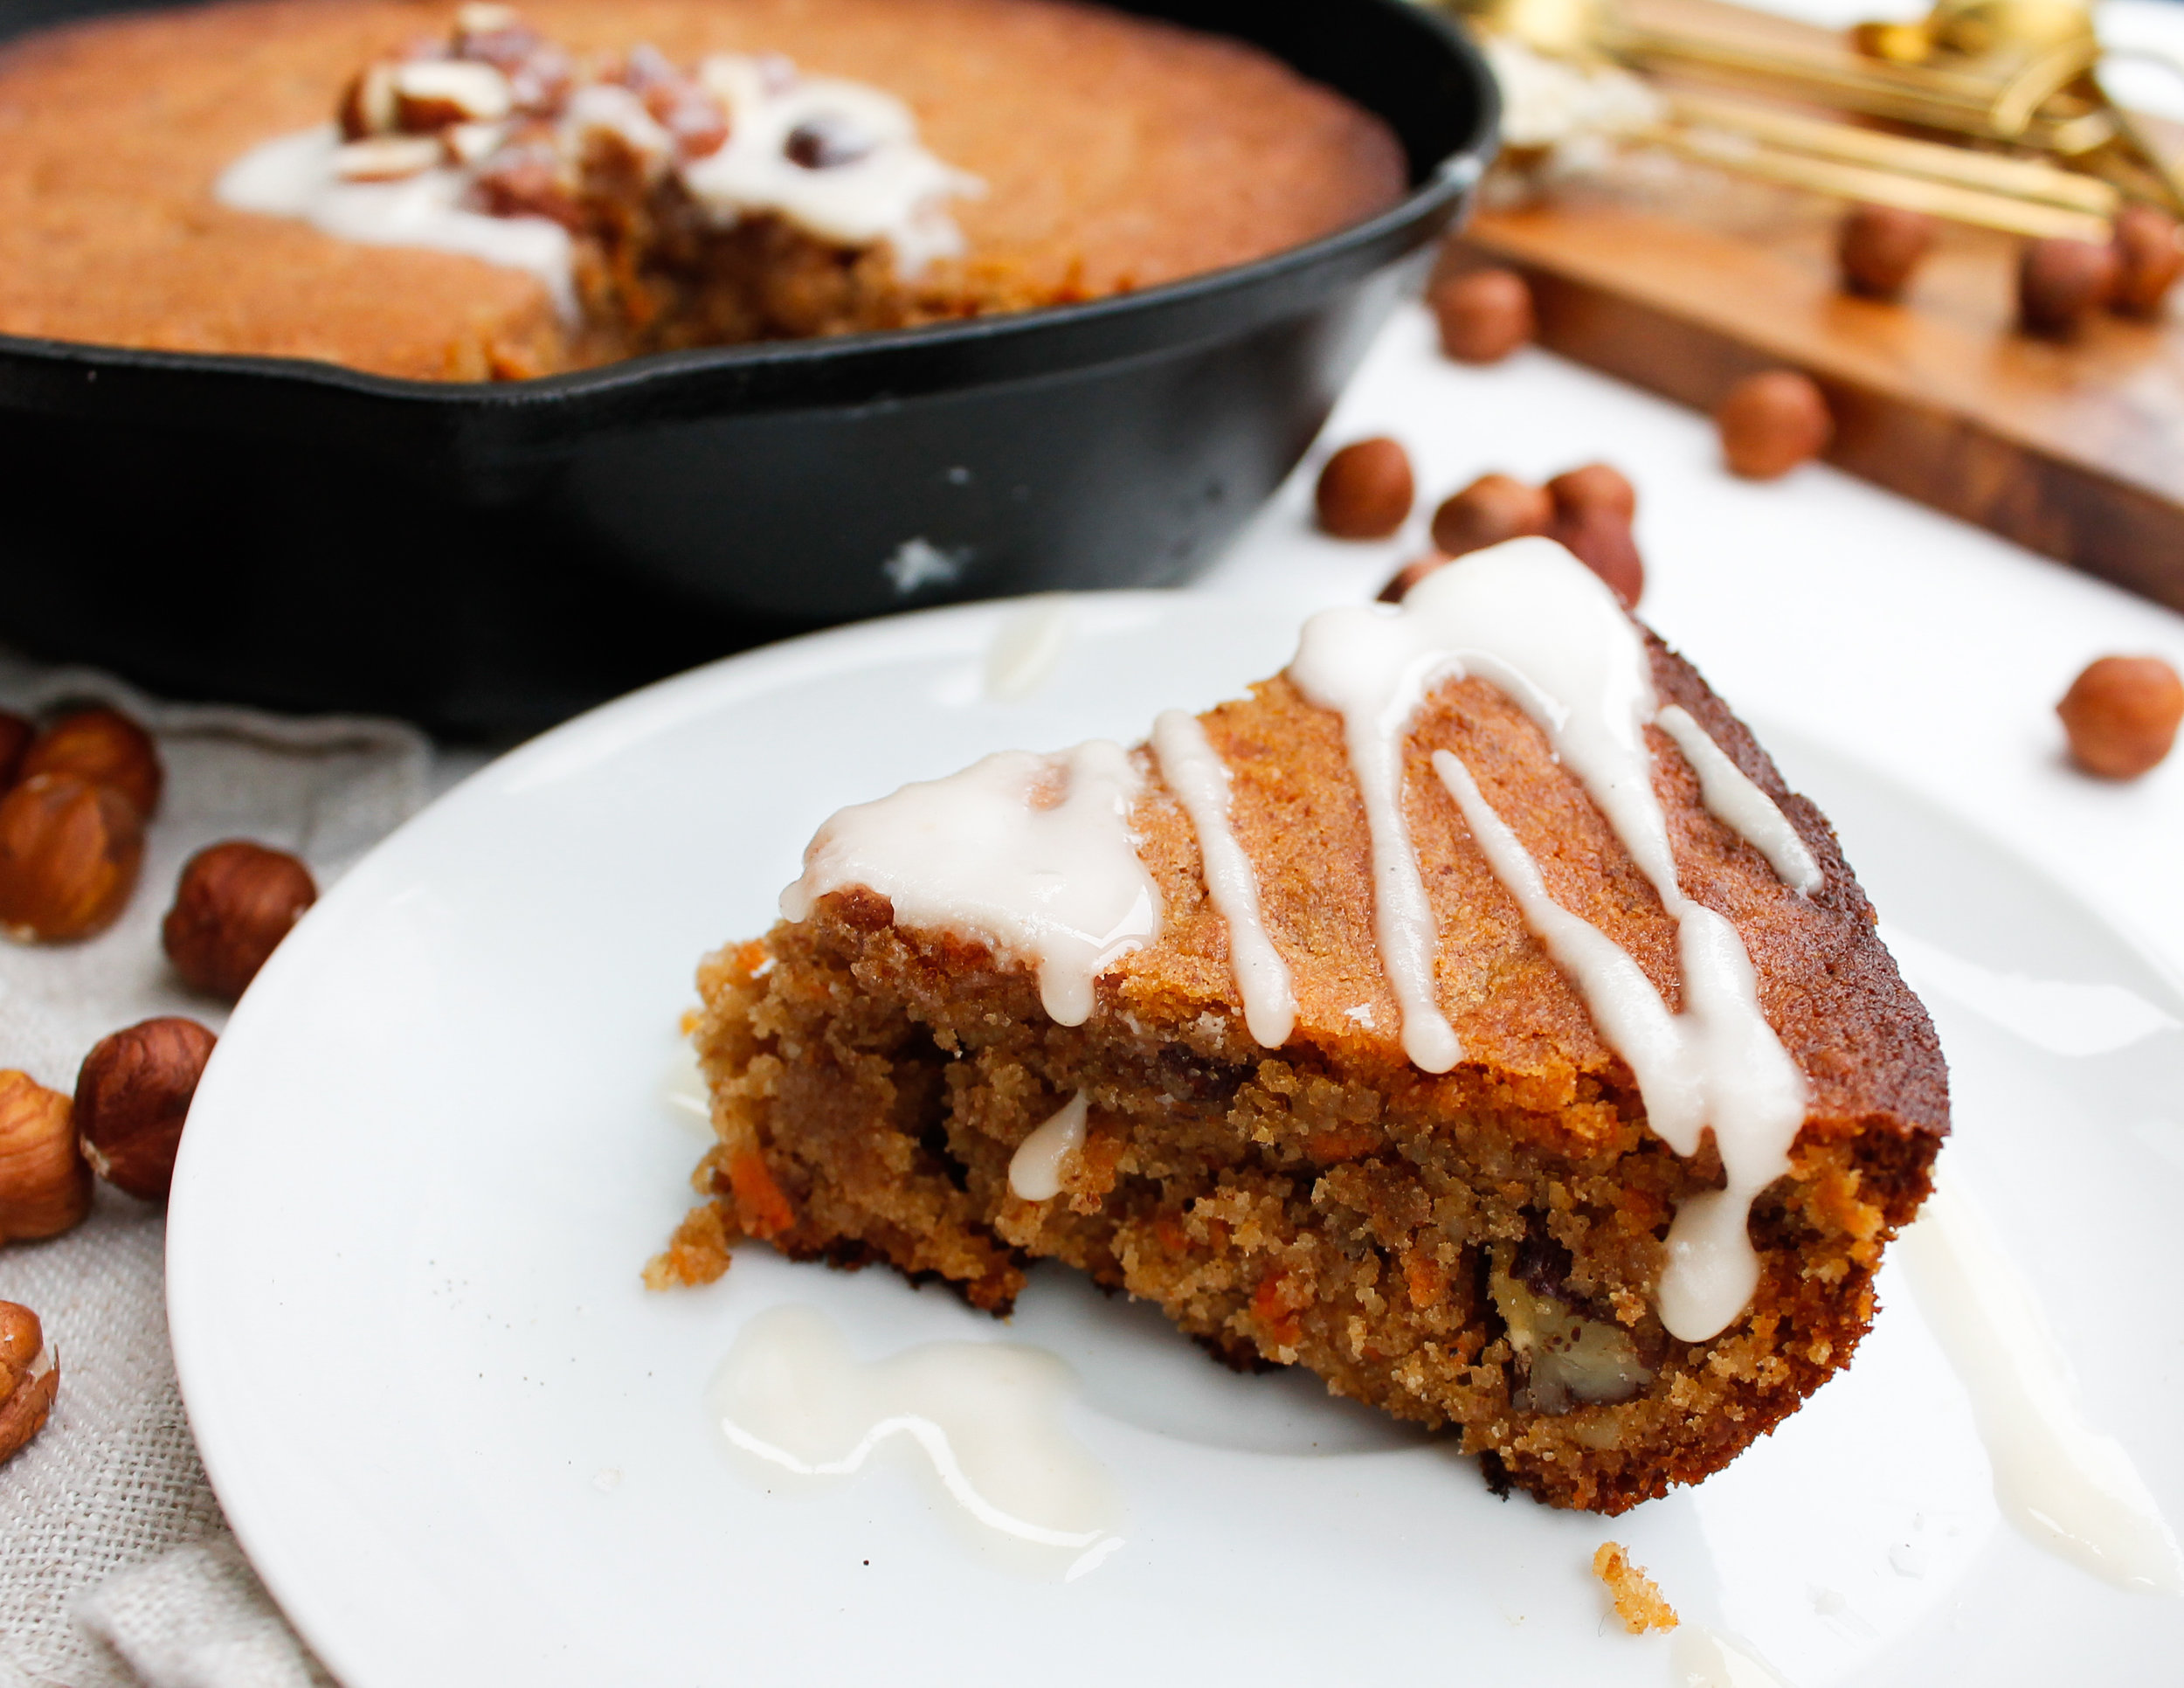 Paleo Carrot Cake Skillet || This healthy carrot cake is grain free, gluten free, dairy free, refined sugar free and specific carbohydrate diet friendly! Full of nutrients, veggies, healthy fats and protein. || #paleobaking #grainfreecarrotcake #healthycarrotcake #cookieskiller || plentyandwell.com